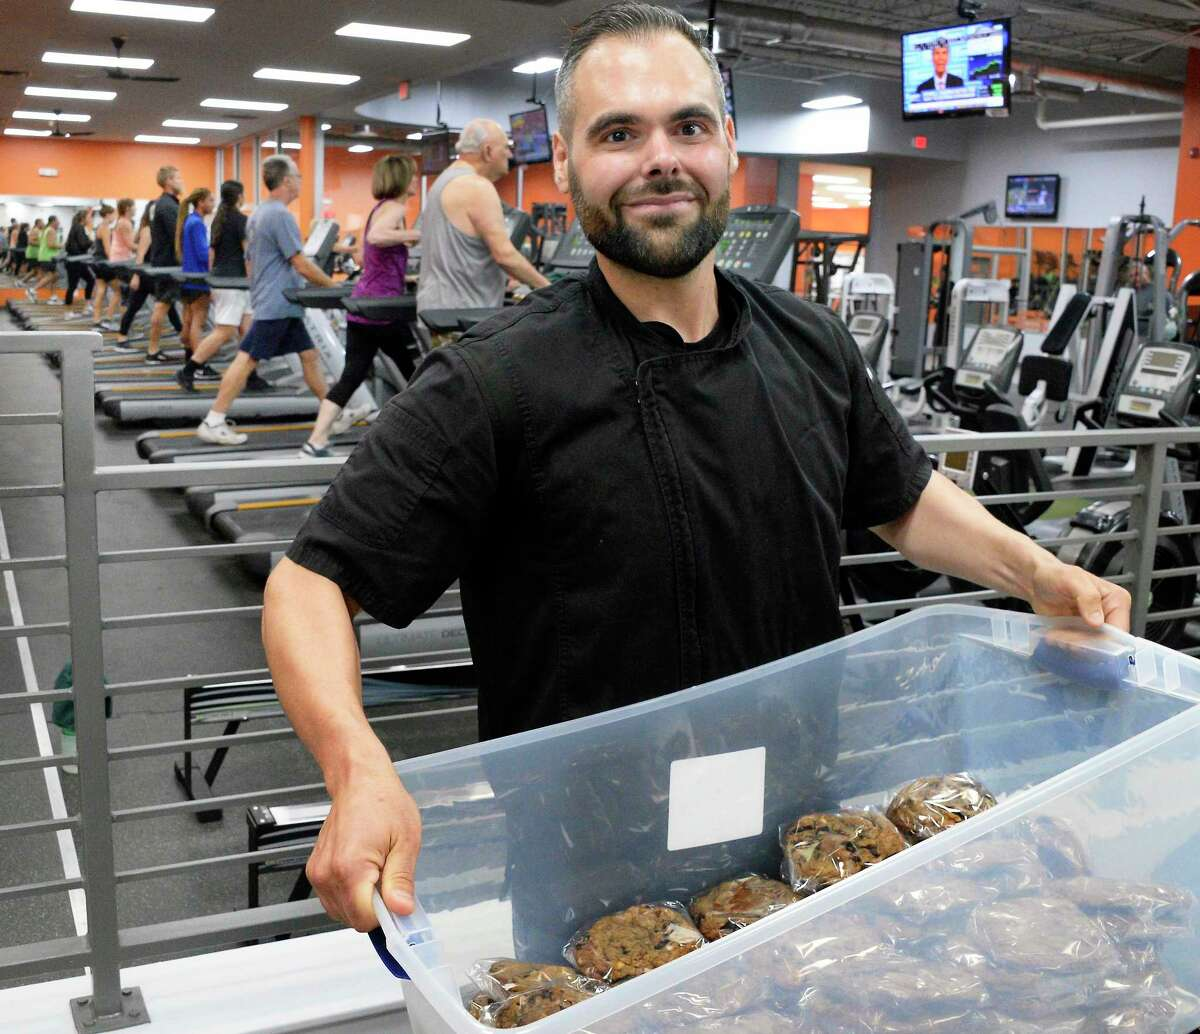 """James Basile, the Anabolic Baker, carries in a bin of """"heathy"""" sweets for sale to fitness buffs inside ABC Fitness Tuesday July 17, 2018 in Colonie, NY. (John Carl D'Annibale/Times Union)"""